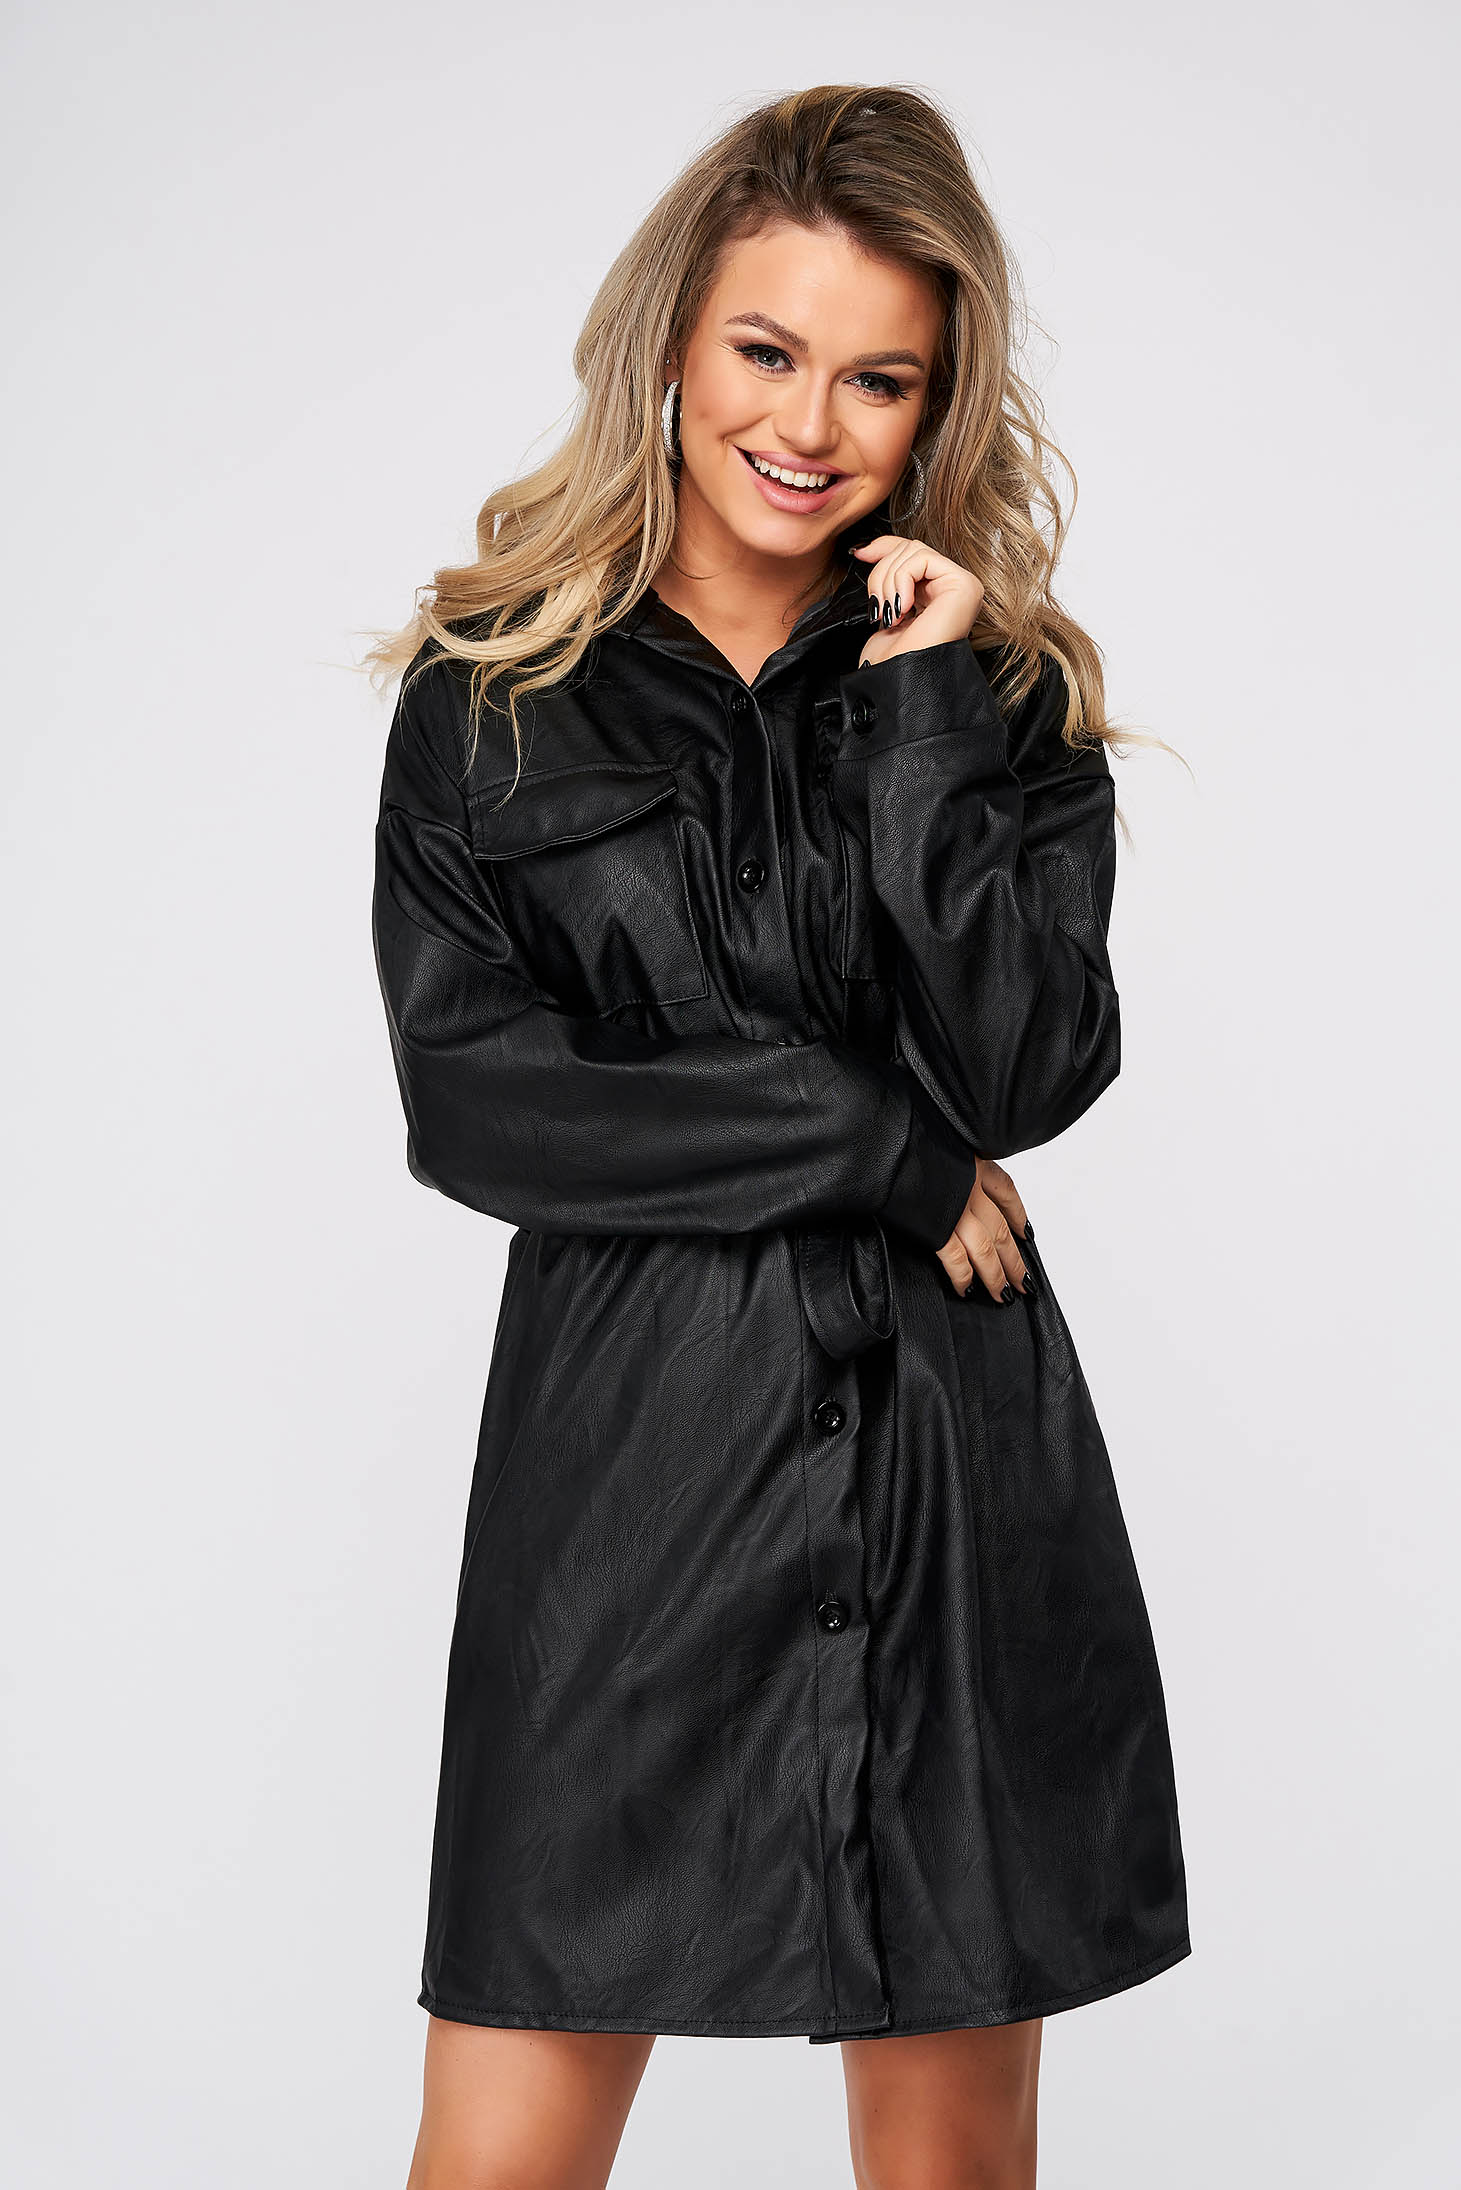 Black dress short cut casual straight from ecological leather shirt dress